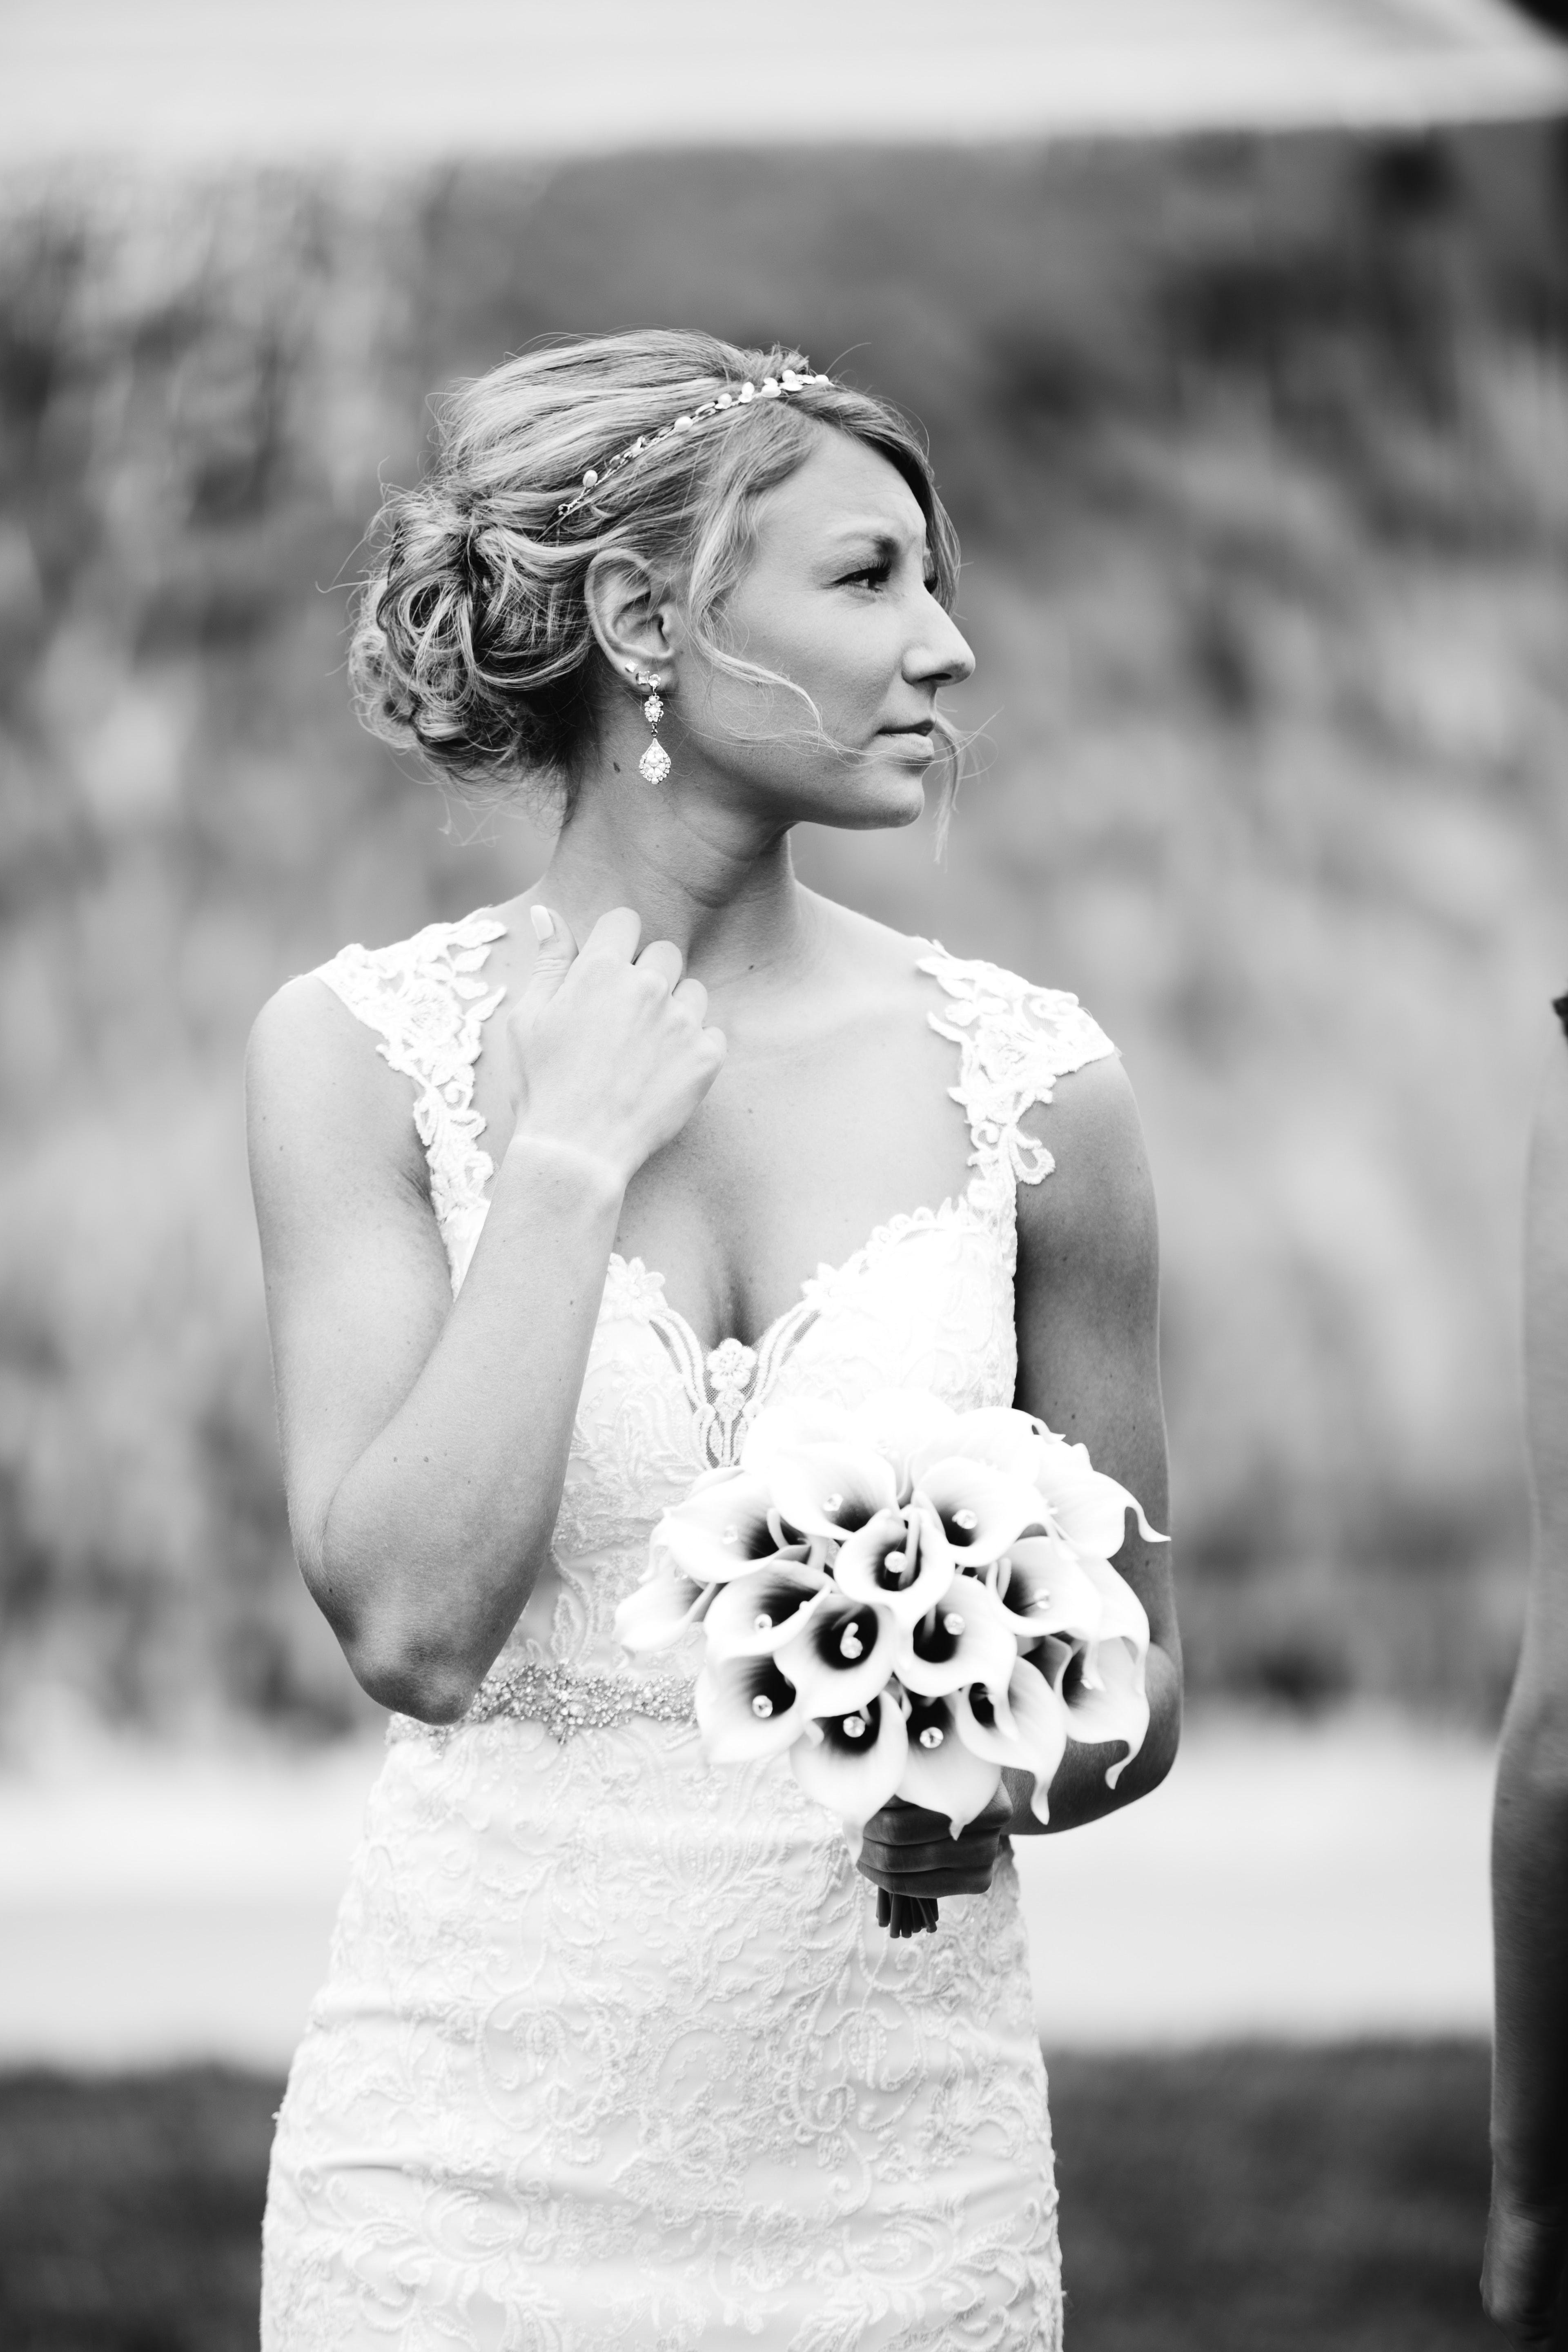 Black and white shot of bride in wedding dress holding bouquet, Greater Des Moines Botanical Garden